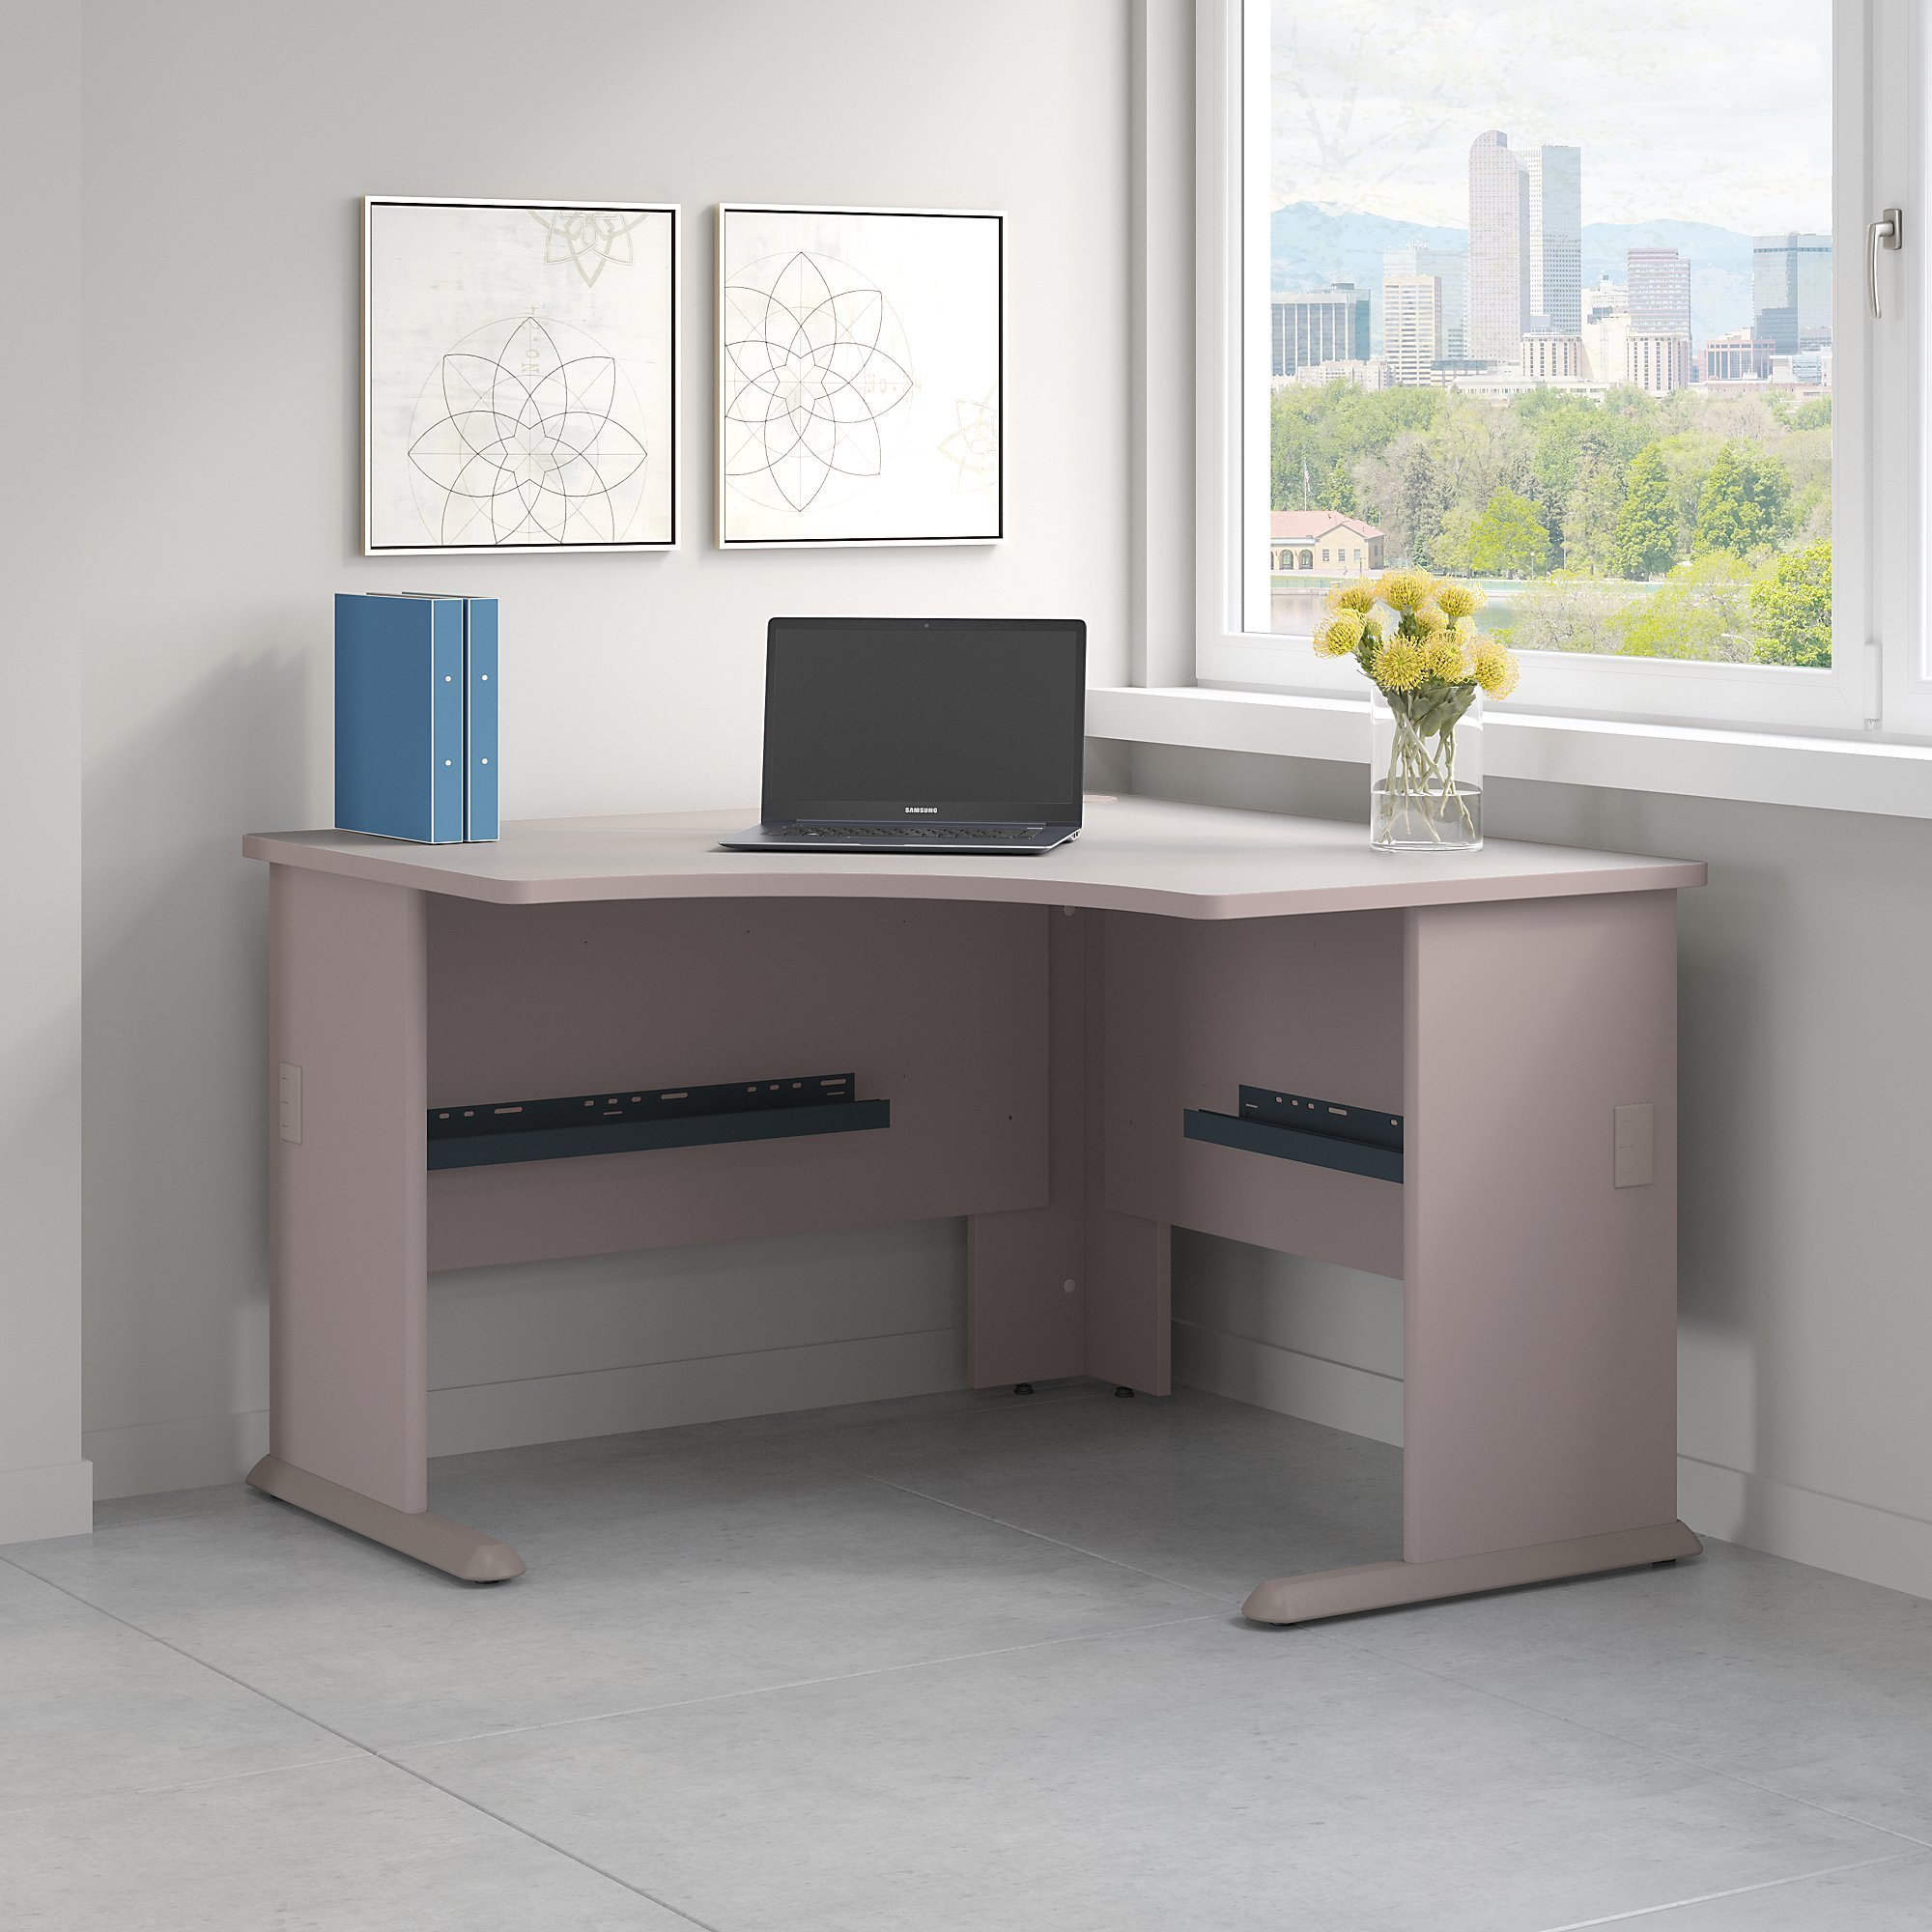 Bush Business Furniture Series A 48W Corner Desk in Pewter and White Spectrum by Bush Business Furniture